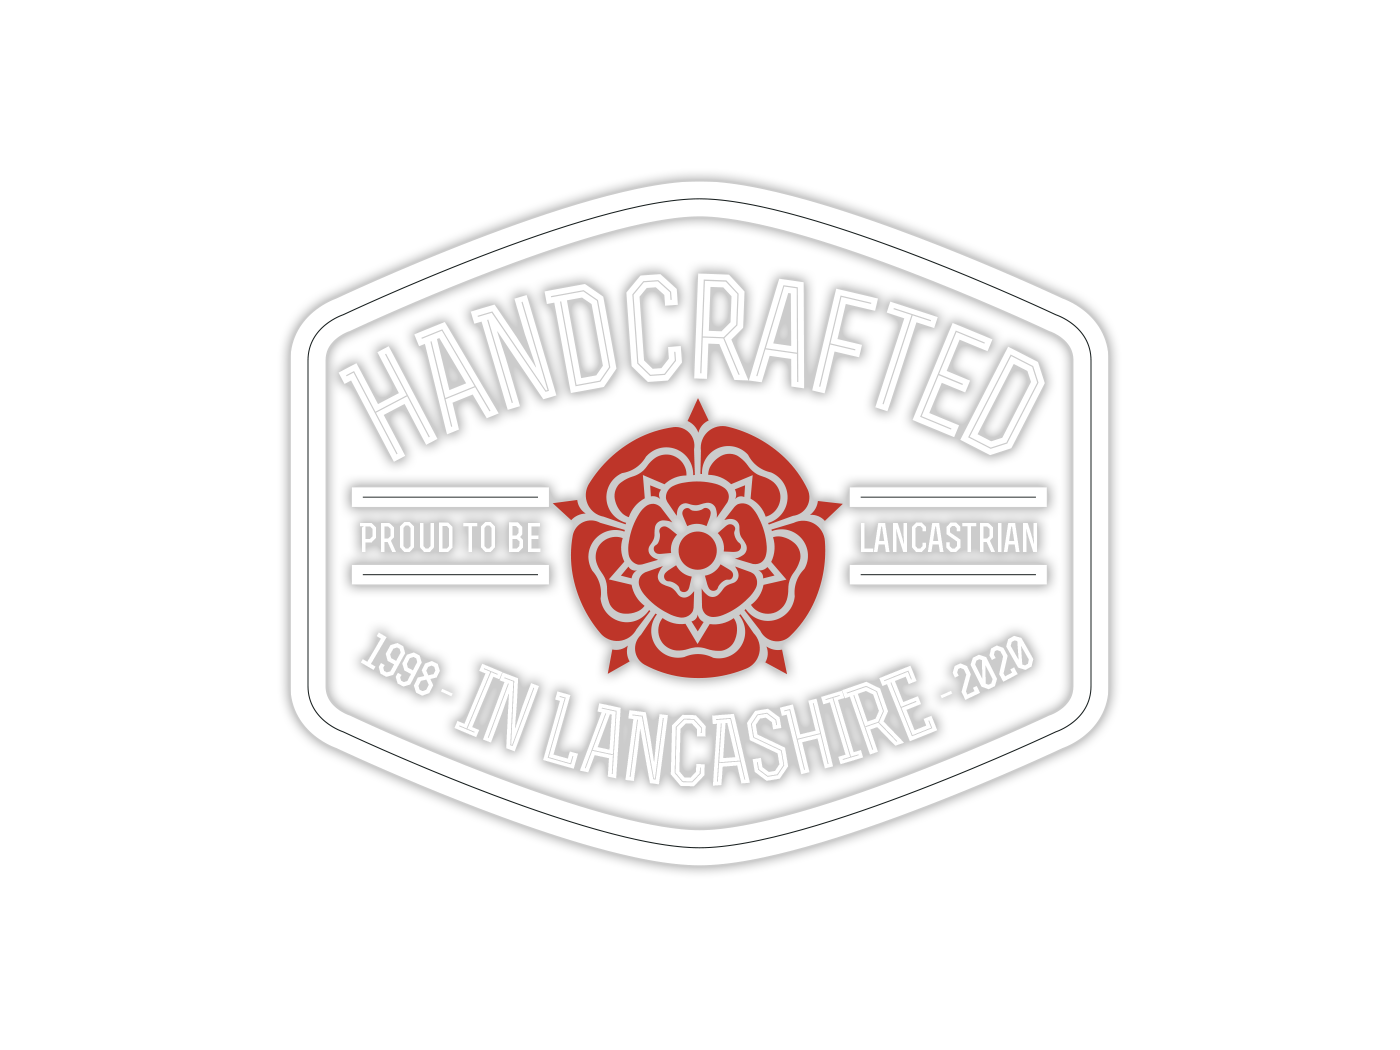 Web Design Handcrafted in Lancashire